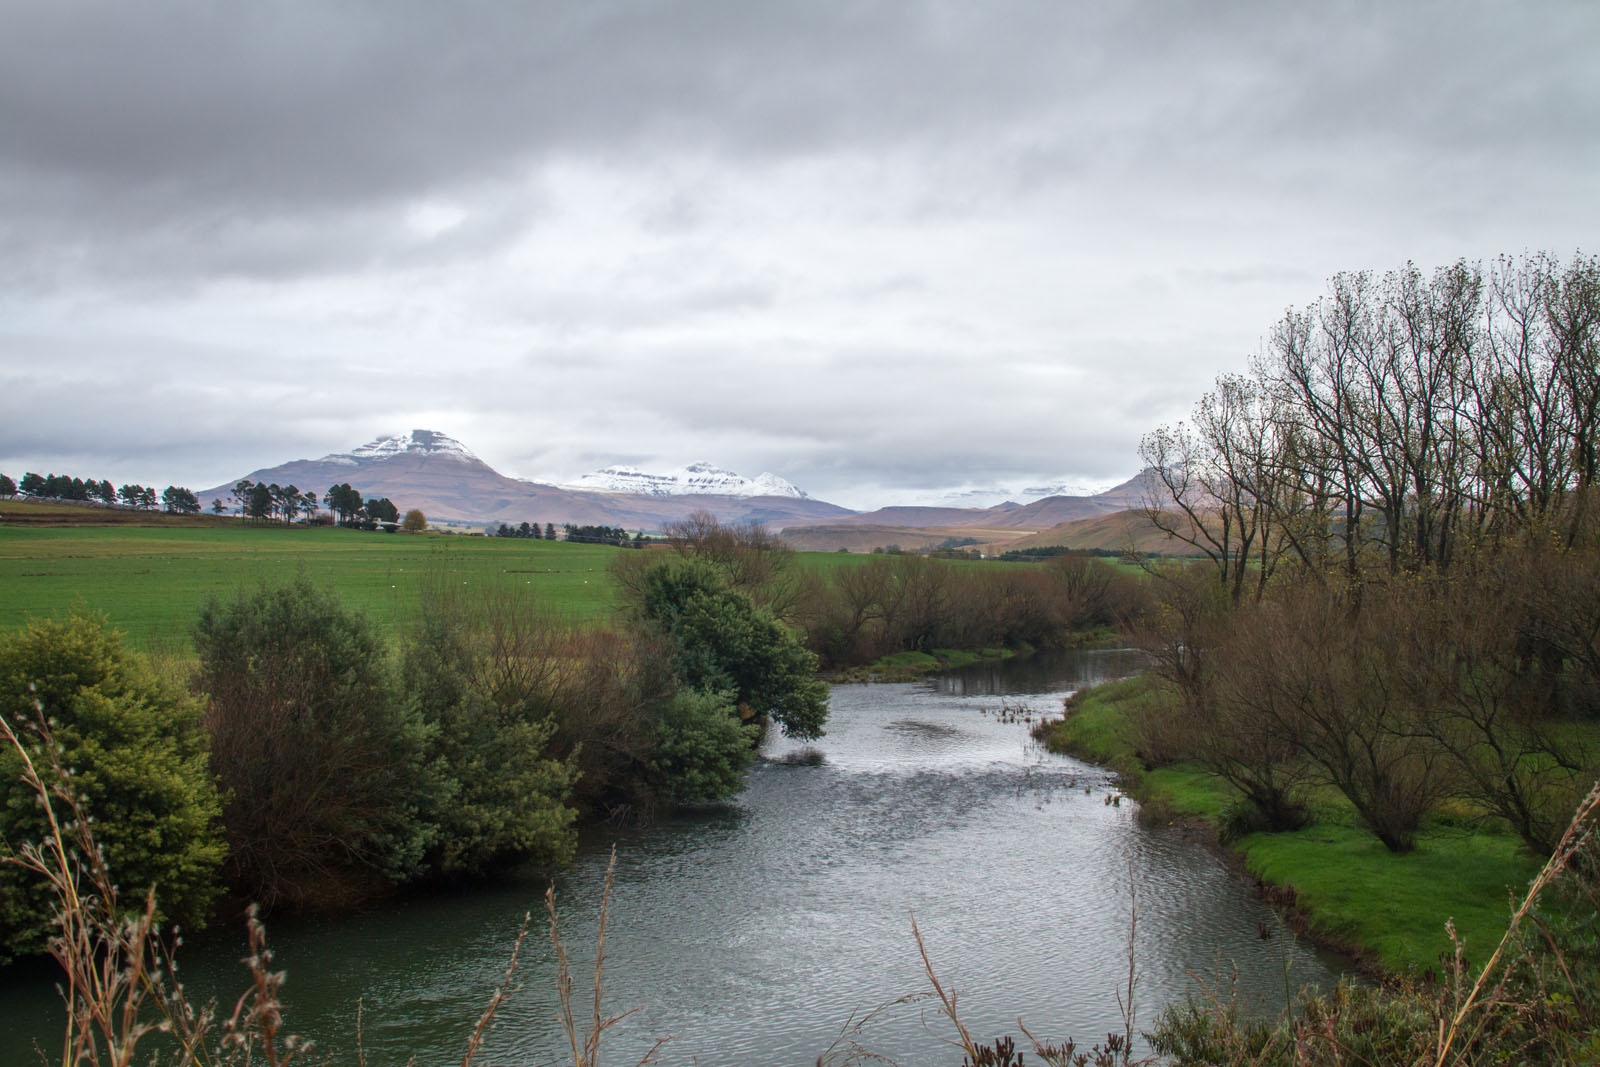 View of the snow capped mountains towering above Sinister Pool on the Umzimkulu River, Underberg